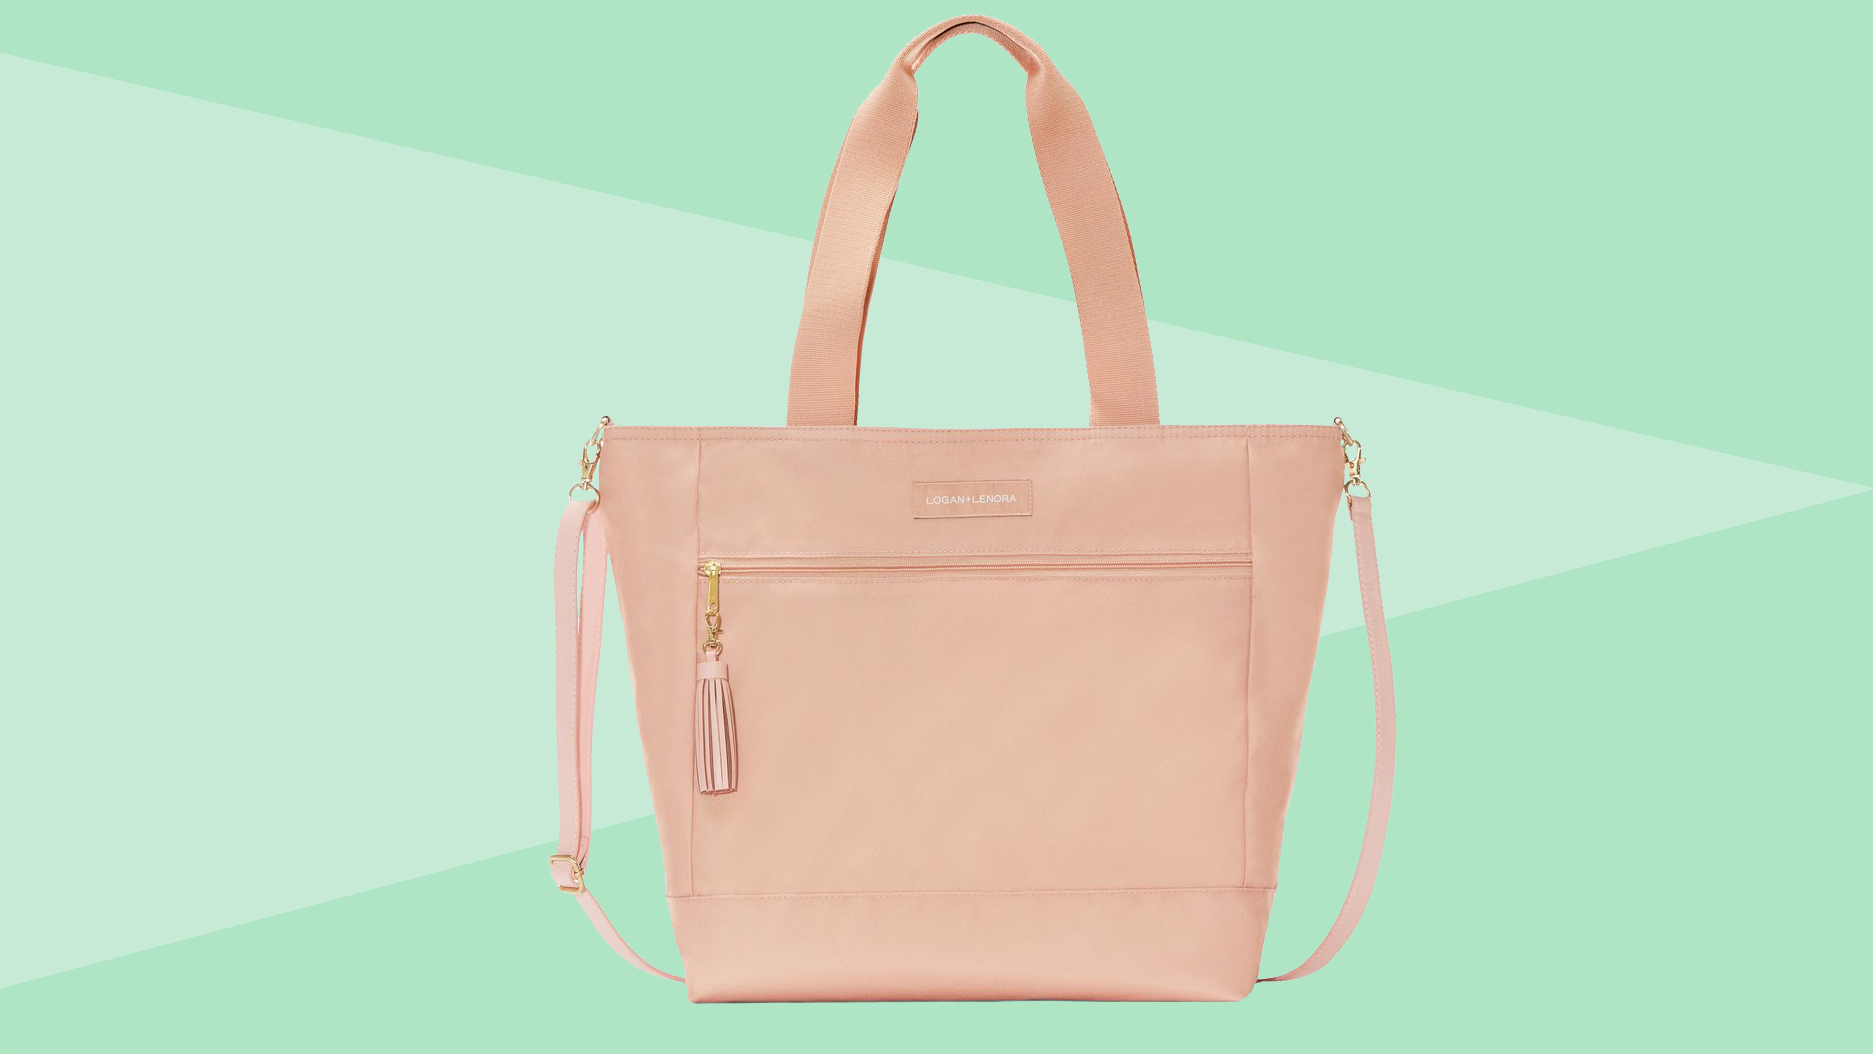 Best gifts for new moms - Big waterproof zippered tote bag